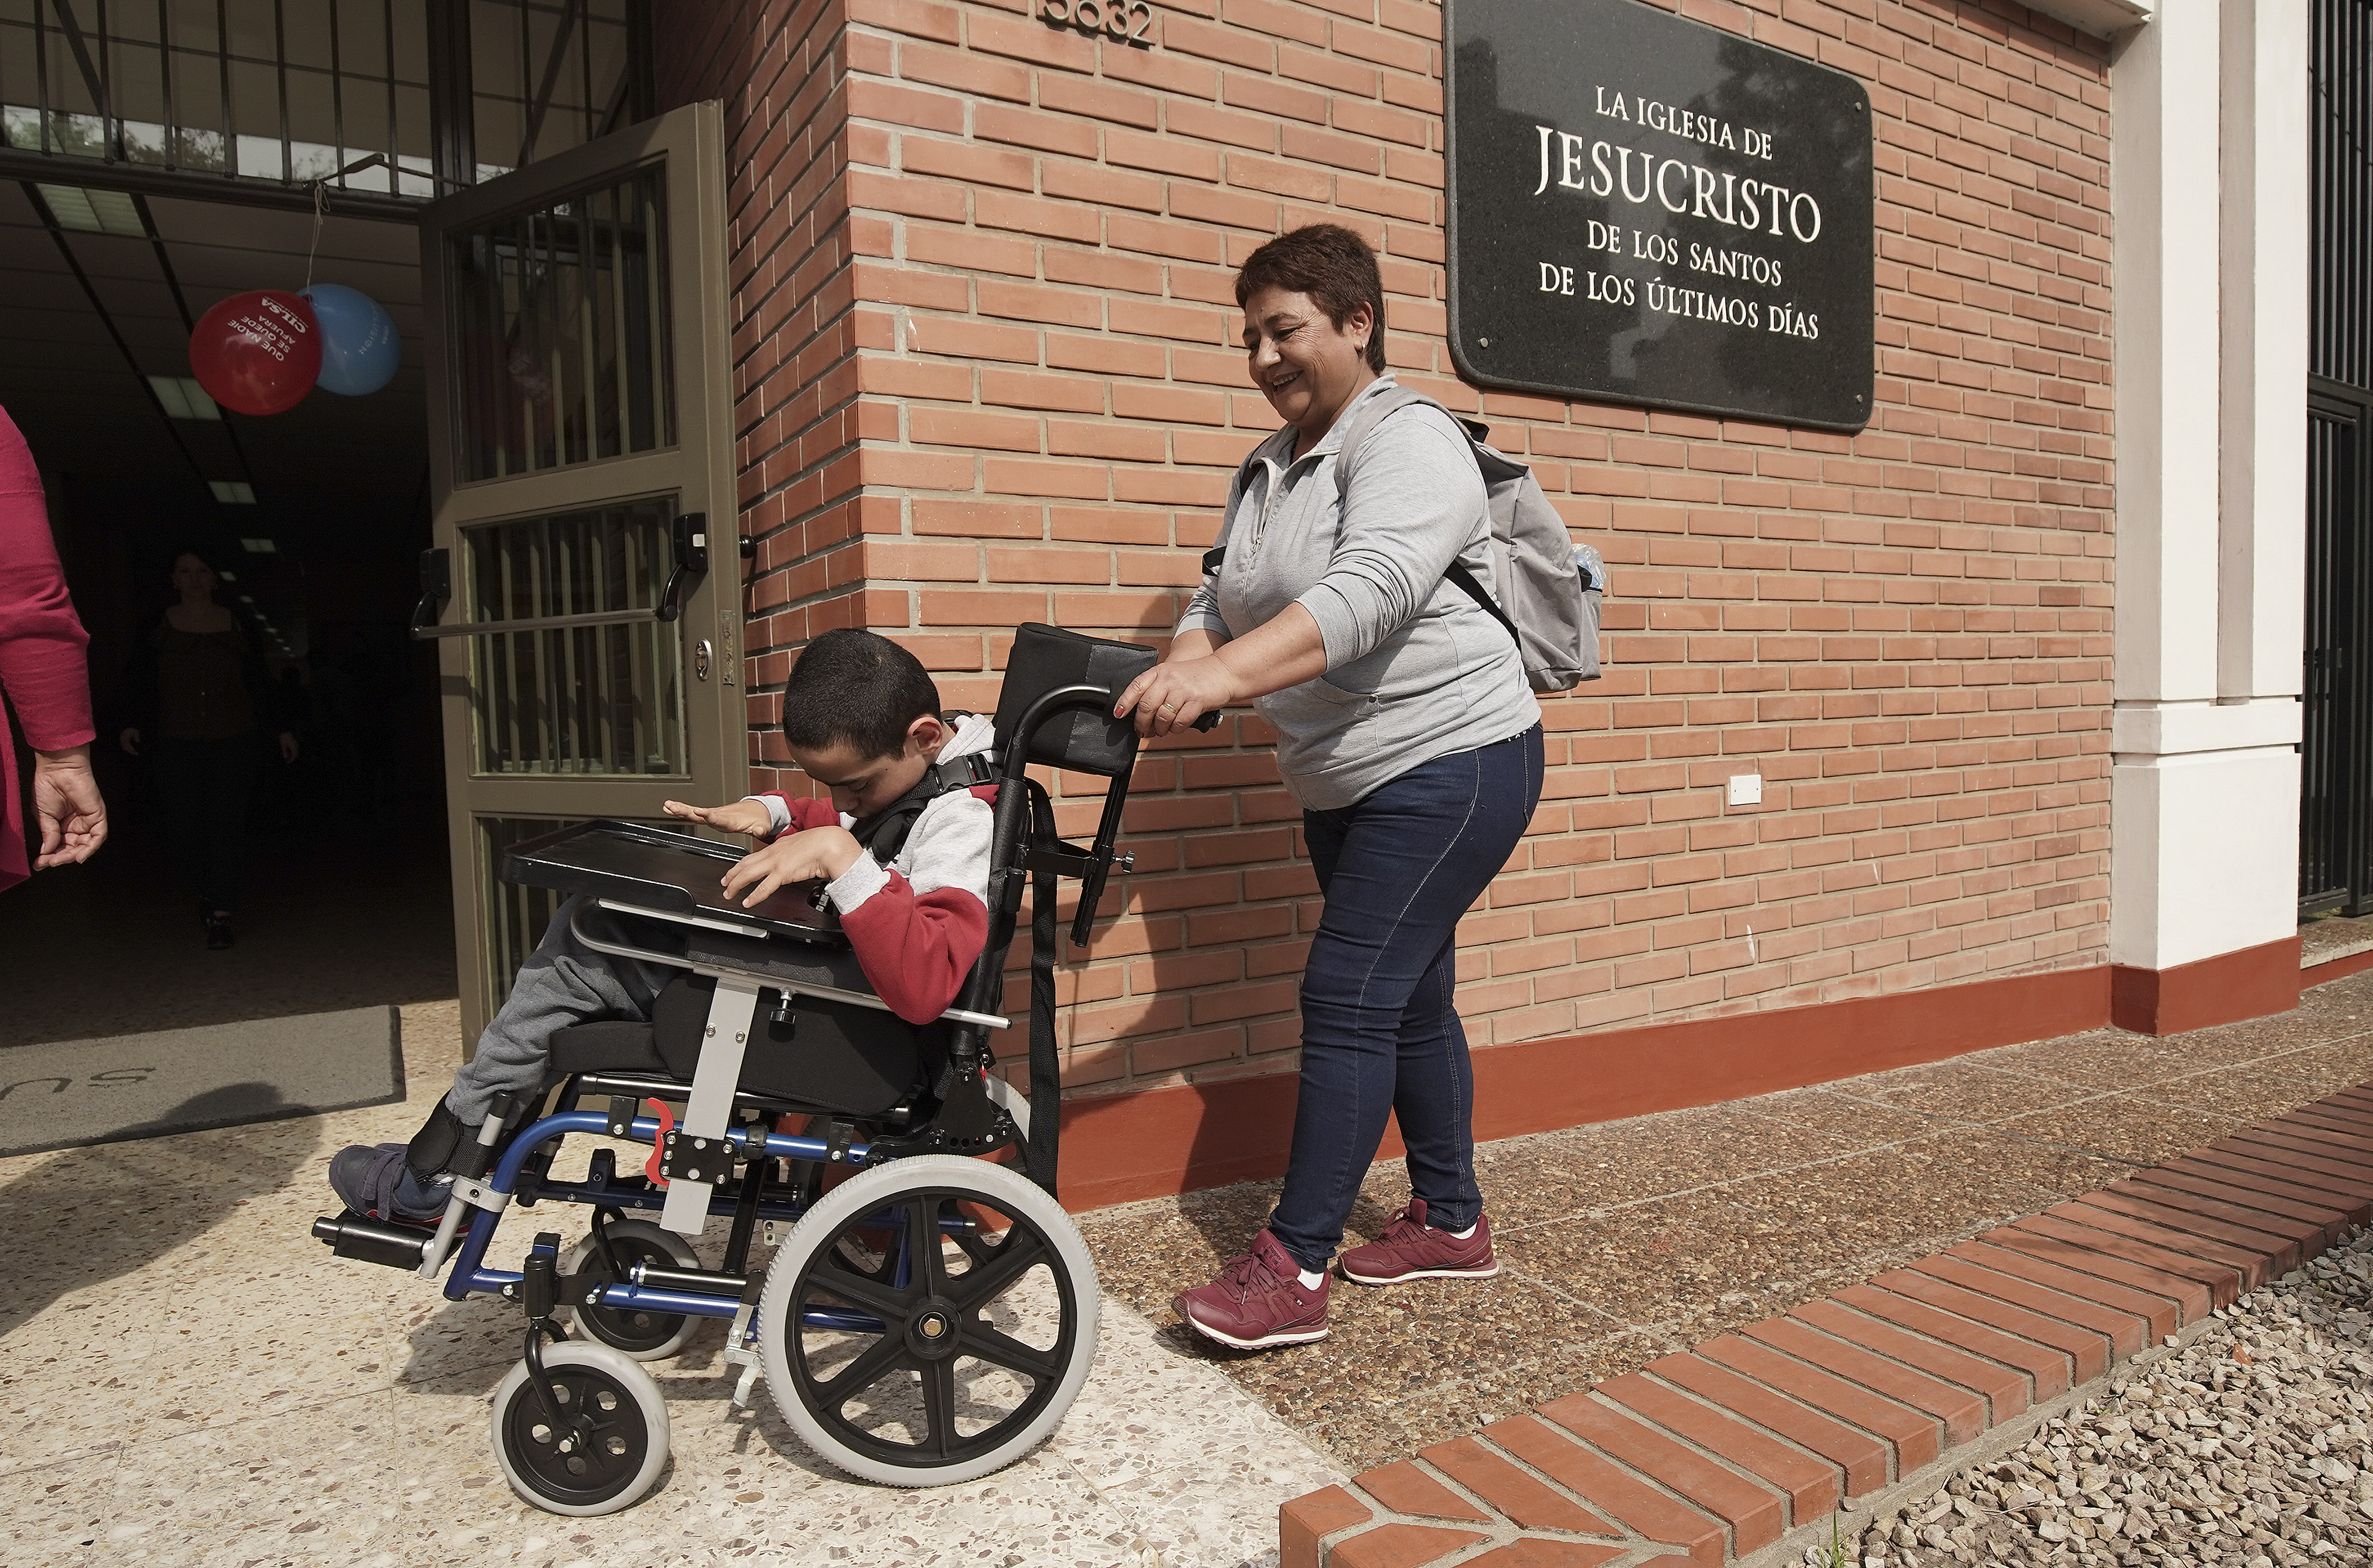 Norma Arguello pushes her son Nahuel in his new wheelchair as Latter-day Saint Charities donated wheelchairs to recipients at the Villa Urquiza Ward in Buenos Aires, Argentina on Wednesday, Aug. 28, 2019.